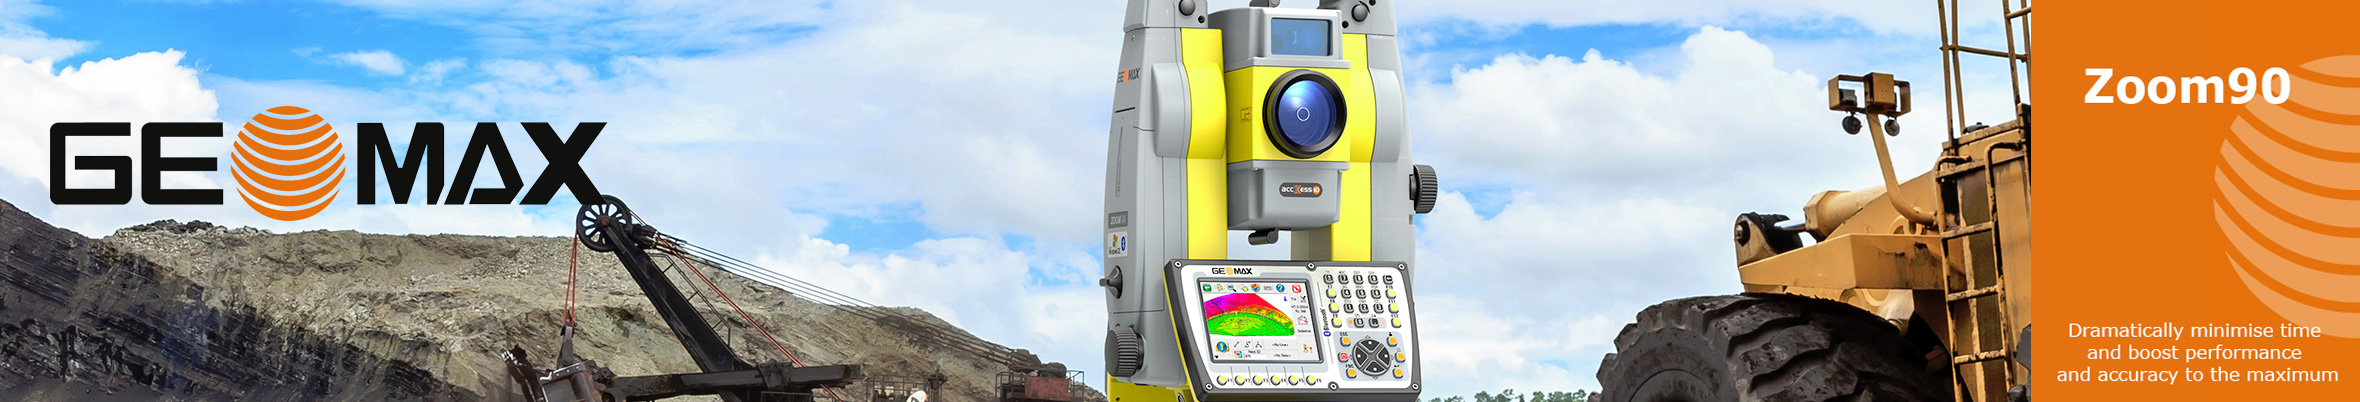 geomax-zoom90-category-banner.jpg